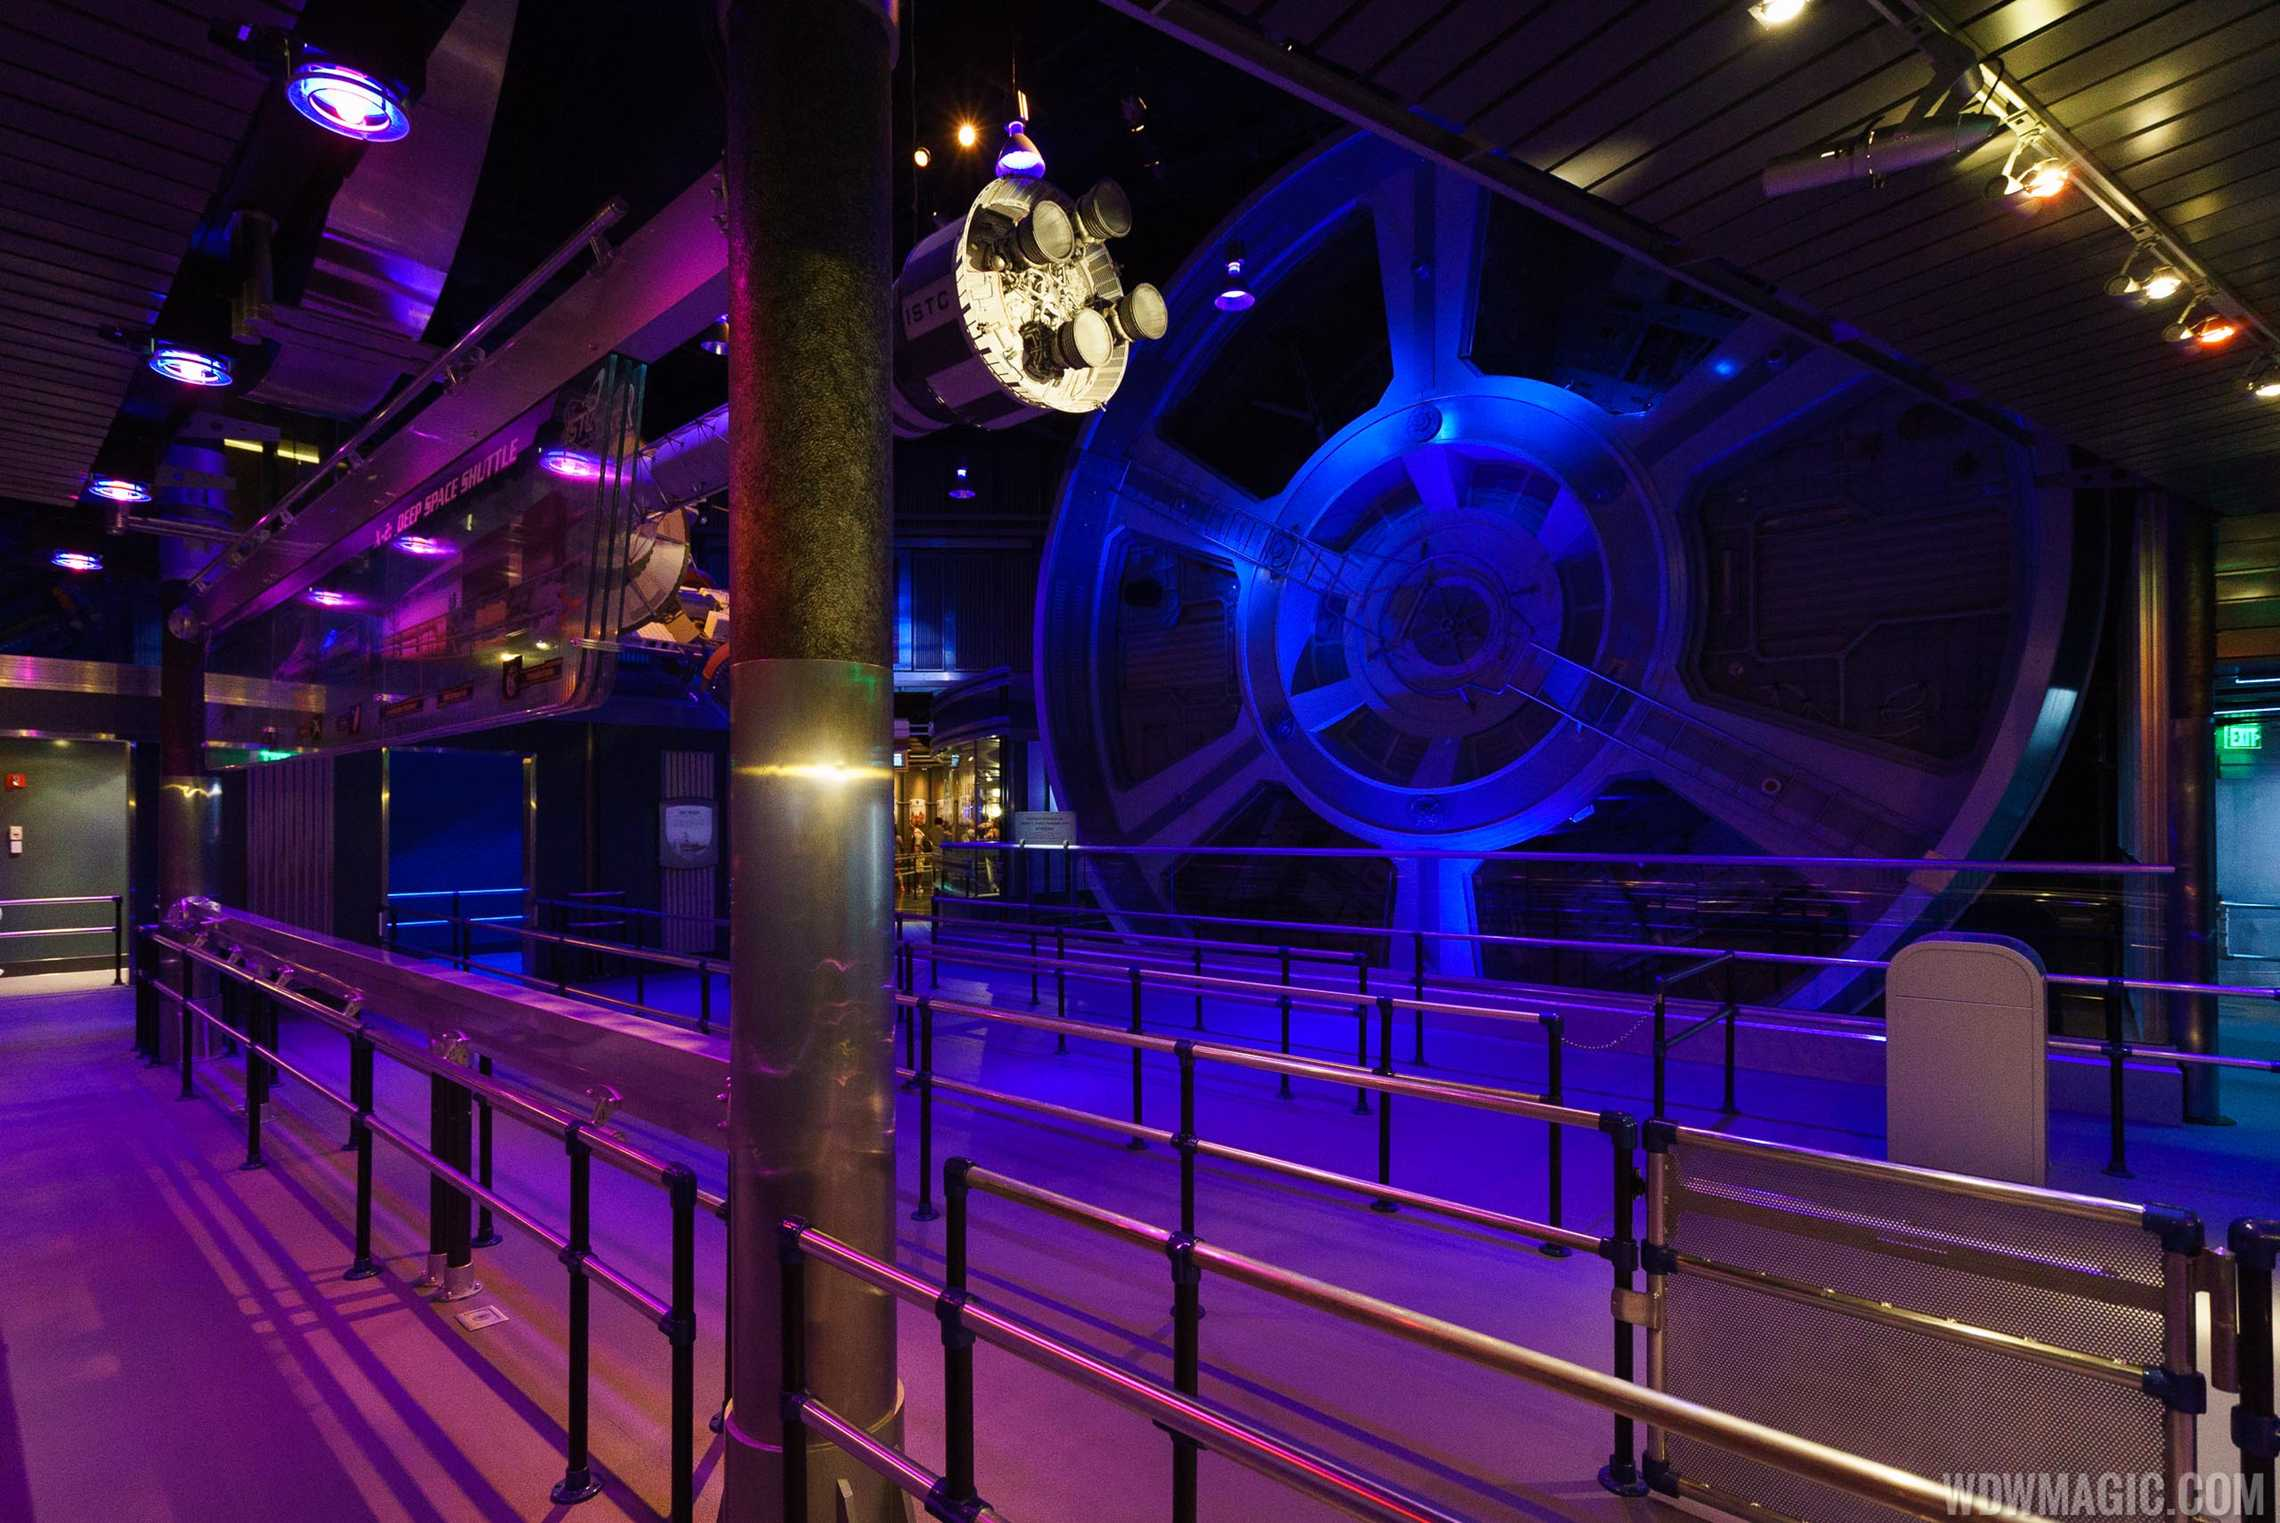 Mission SPACE queue area - the gravity wheel was not repaired and does not rotate